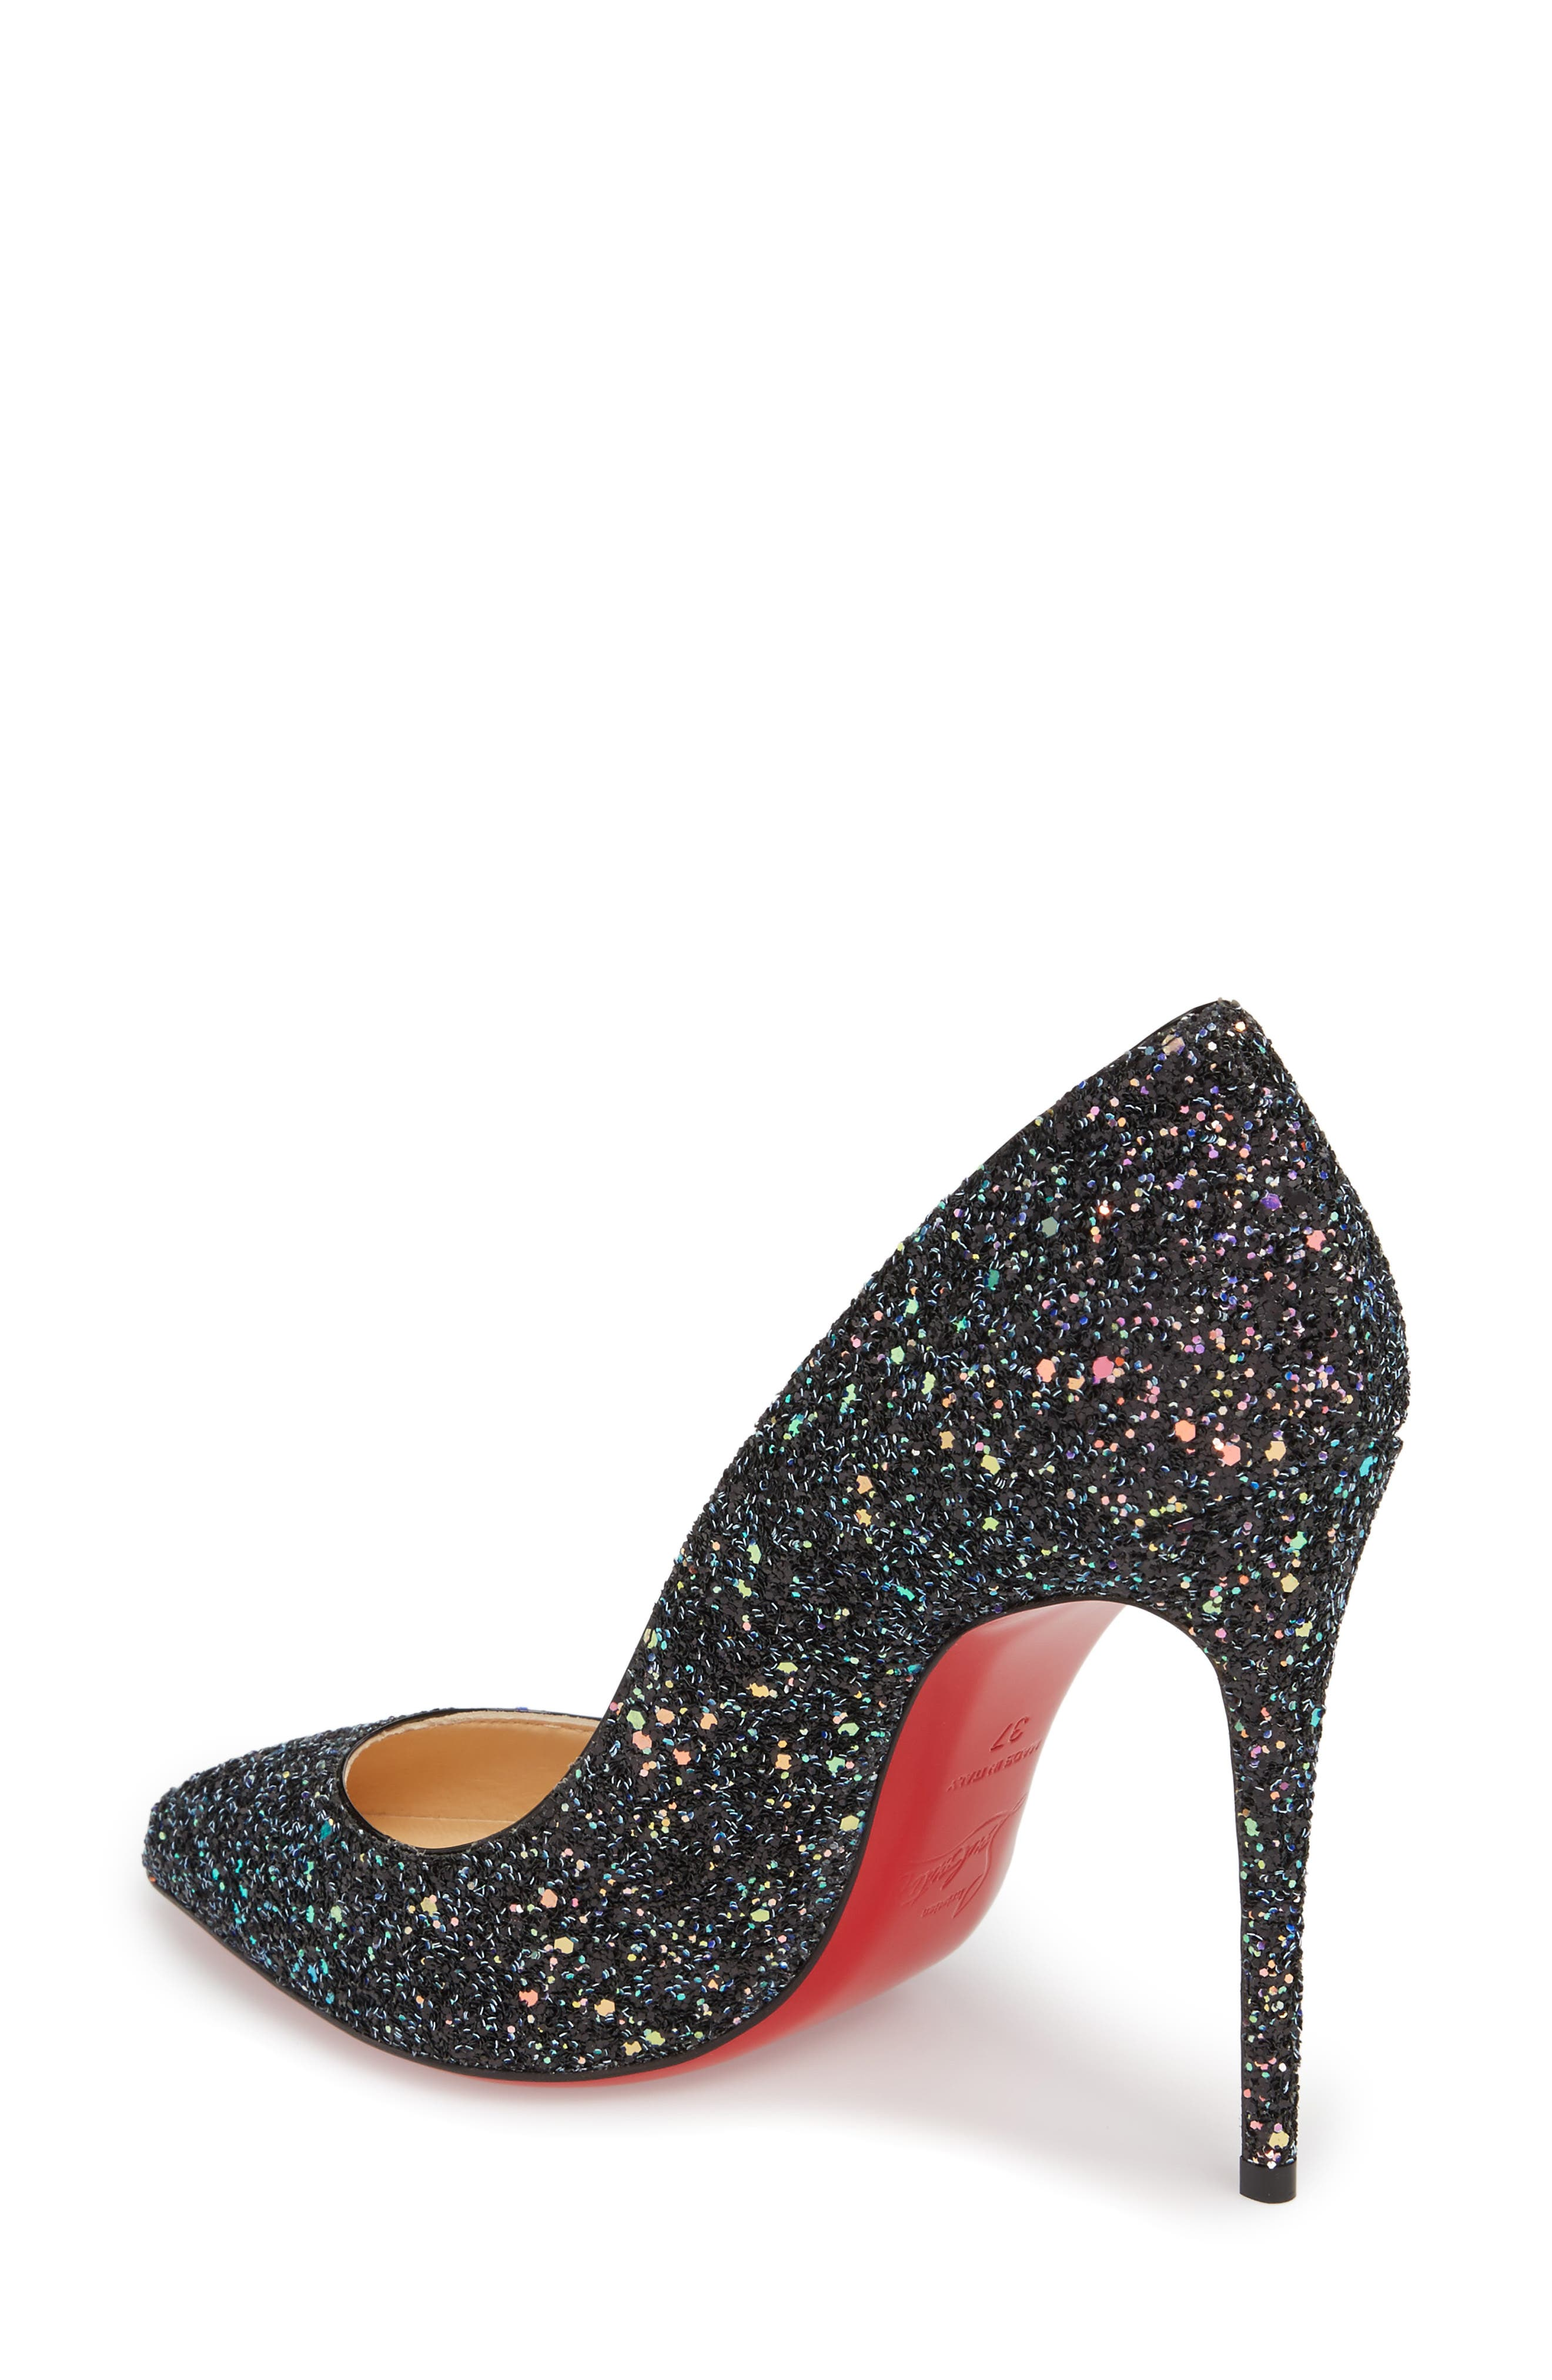 Pigalle Follies Glitter Pointy Toe Pump,                             Alternate thumbnail 2, color,                             001